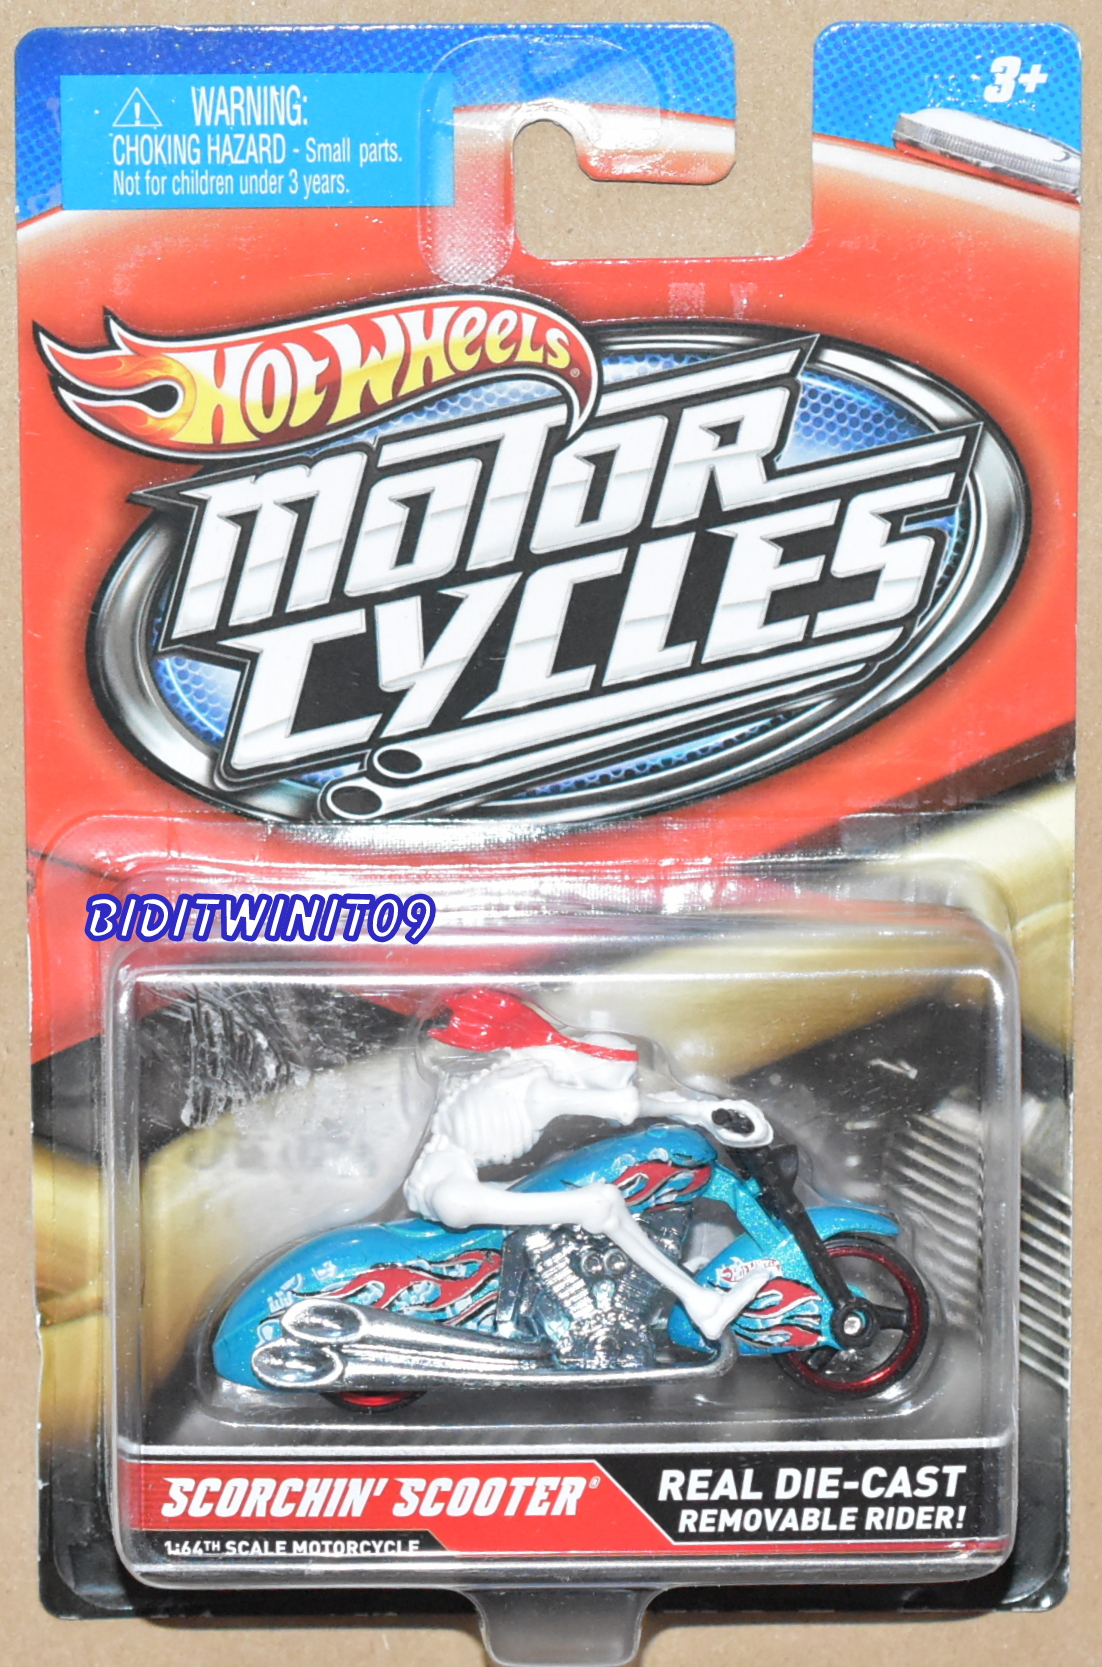 HOT WHEELS MOTOR CYCLES SCORCHIN' SCOOTER' REAL DIE-CAST REMOVABLE RIDER